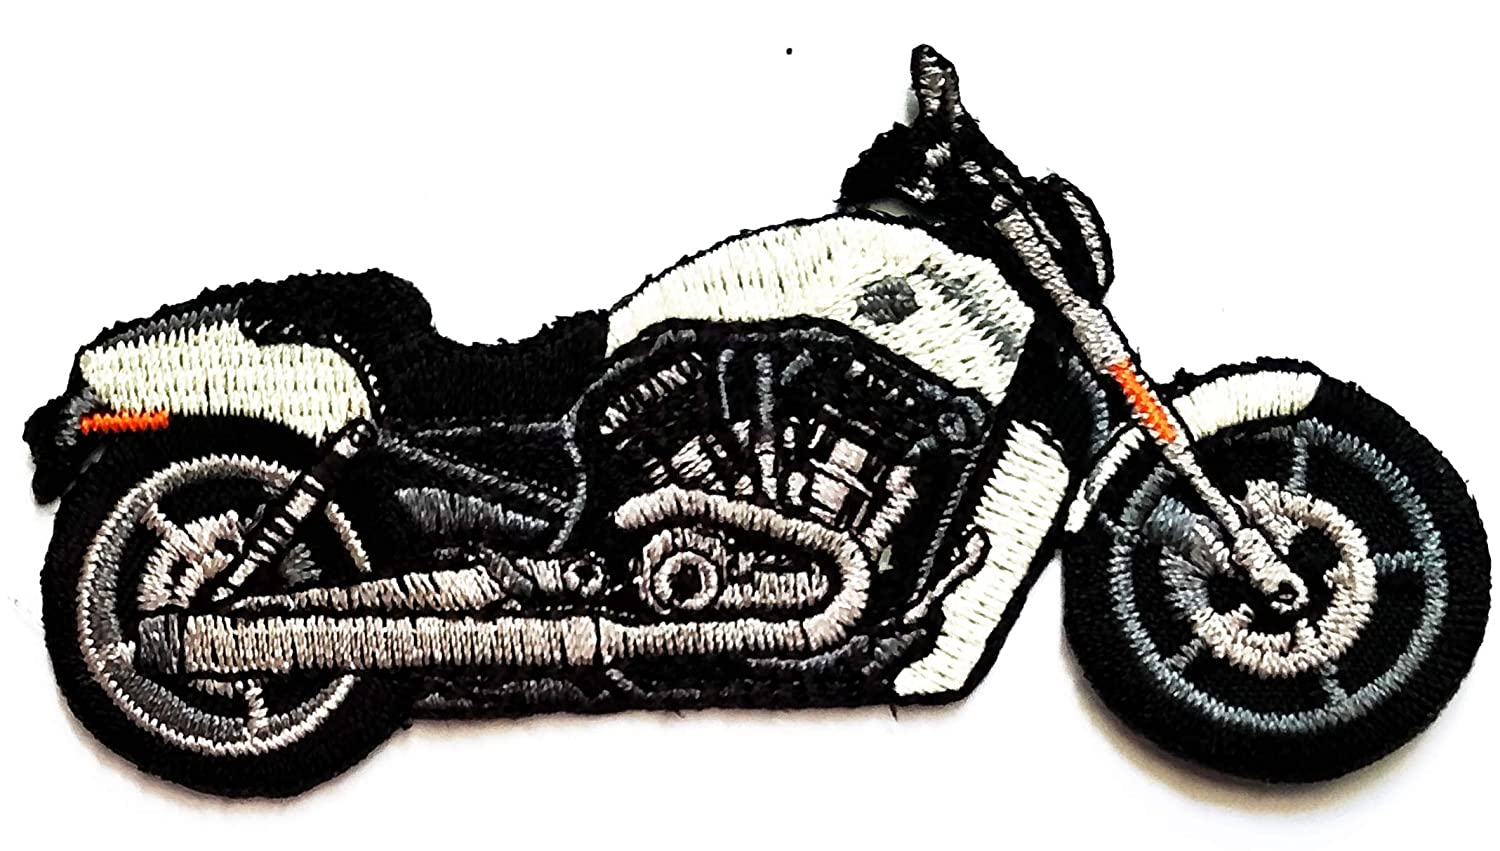 Nipitshop Patches Blue Motorcycle Motocross Racing Dirt Bike Off-Road Cartoon Kid Baby Girl Jacket T-Shirt Patch Sew Iron on Embroidered Sign Badge Costume Clothing